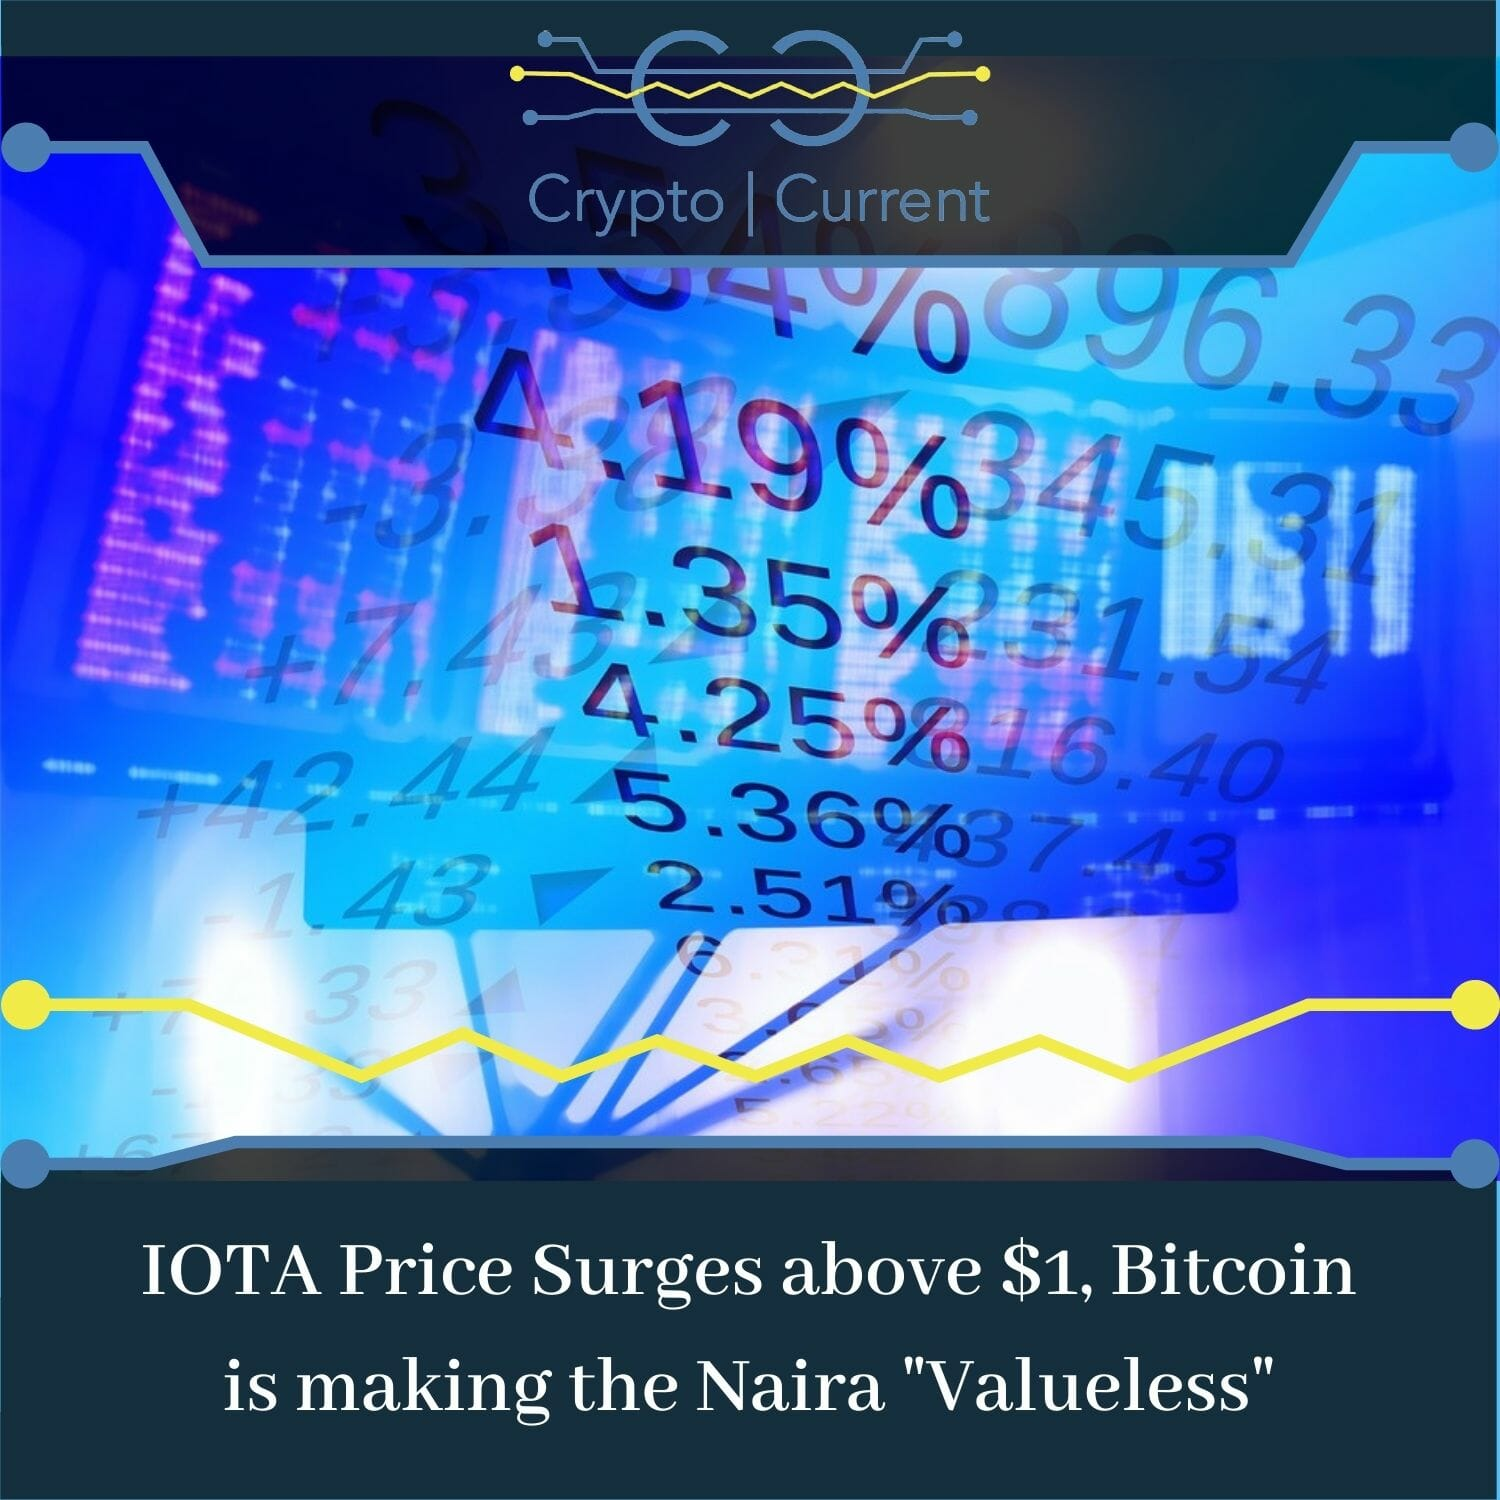 """IOTA Price Surges above $1, Bitcoin is making the Naira """"Valueless"""""""